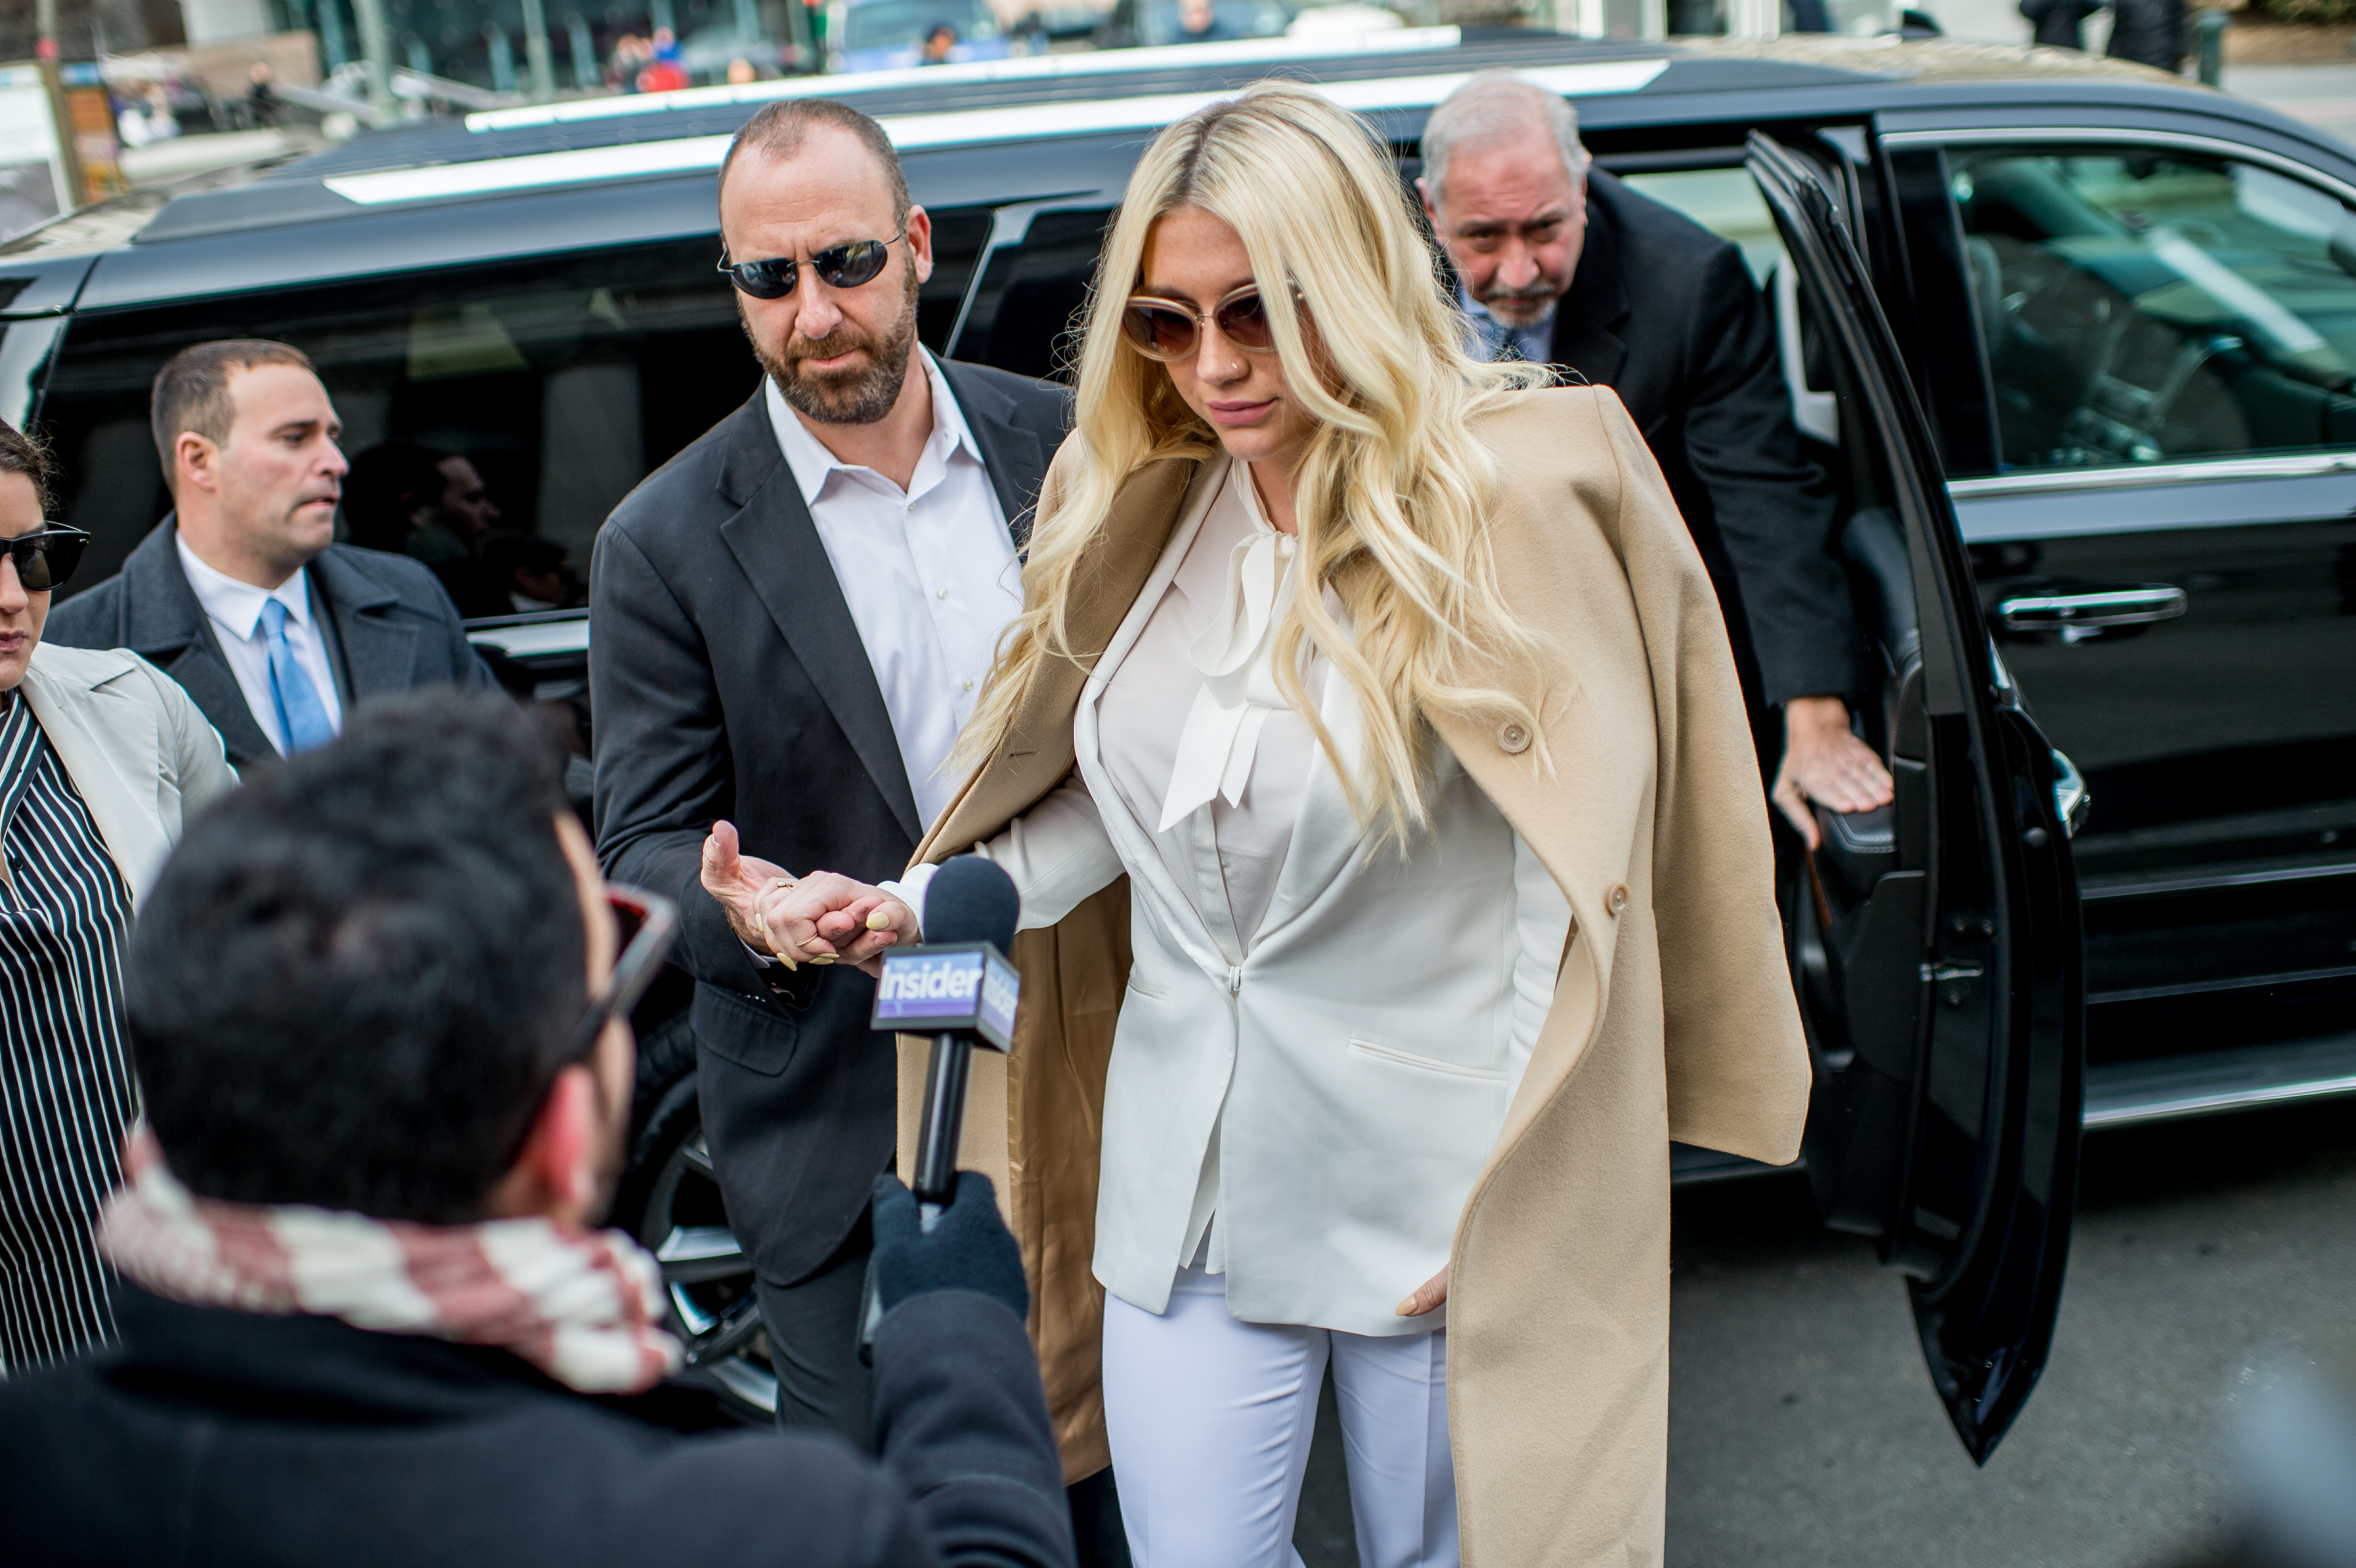 Kesha makes a court appearance as fans protest Sony Music Entertainment outside New York State Supreme Court on February 19, 2016 in New York City. Sony has refused to voluntarily release the pop star from her contract which requires her to make eight more albums with producer Dr. Luke, a man she claims sexually assaulted her.